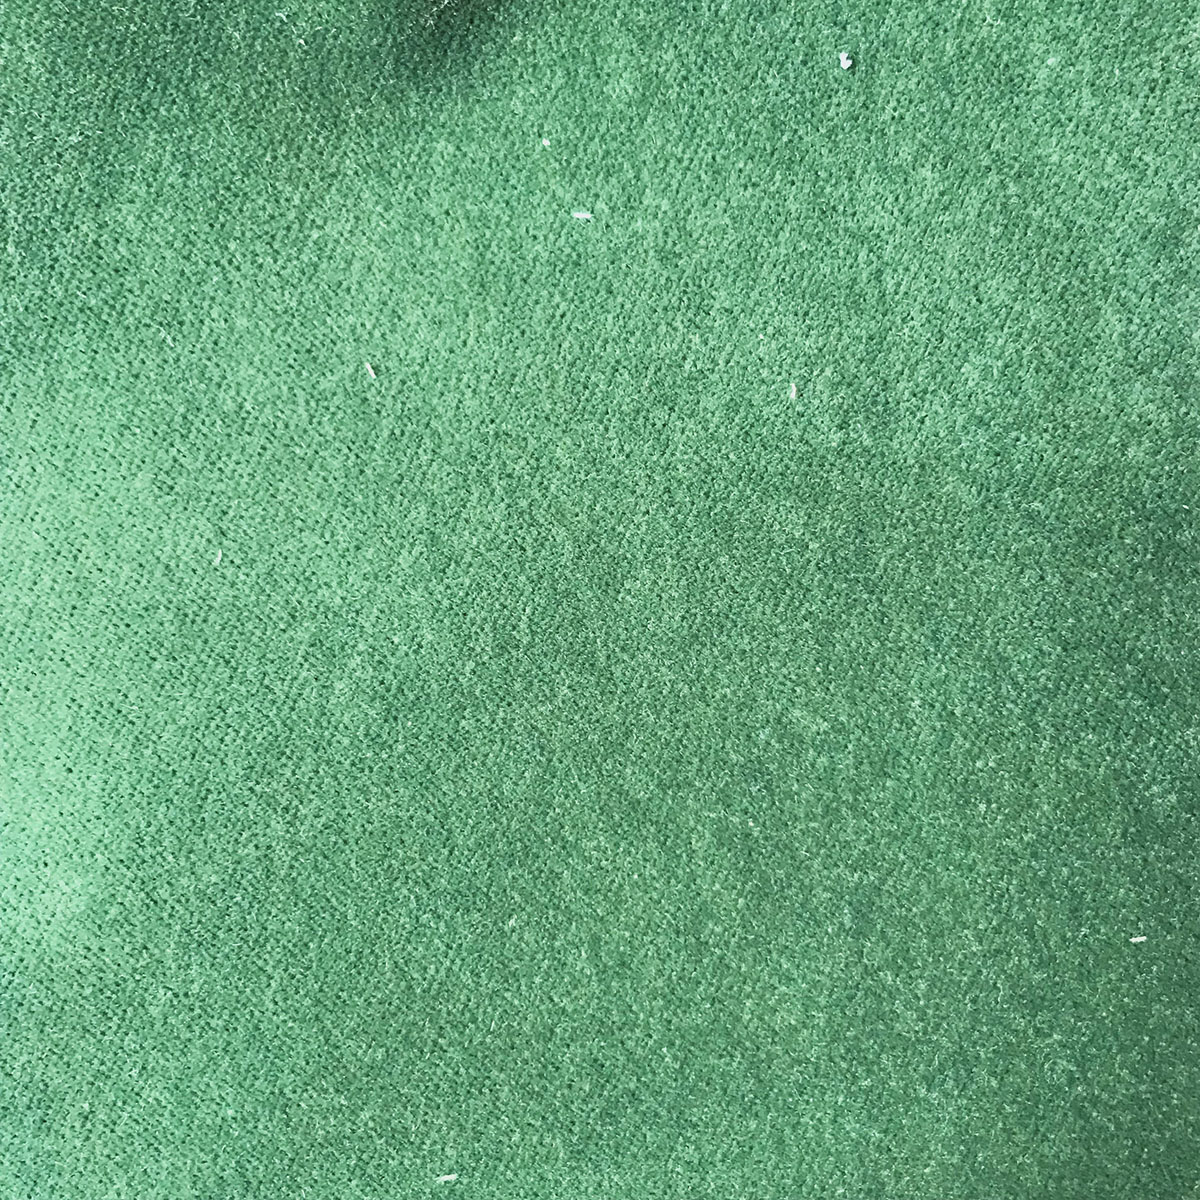 Cotton Velvet Emerald